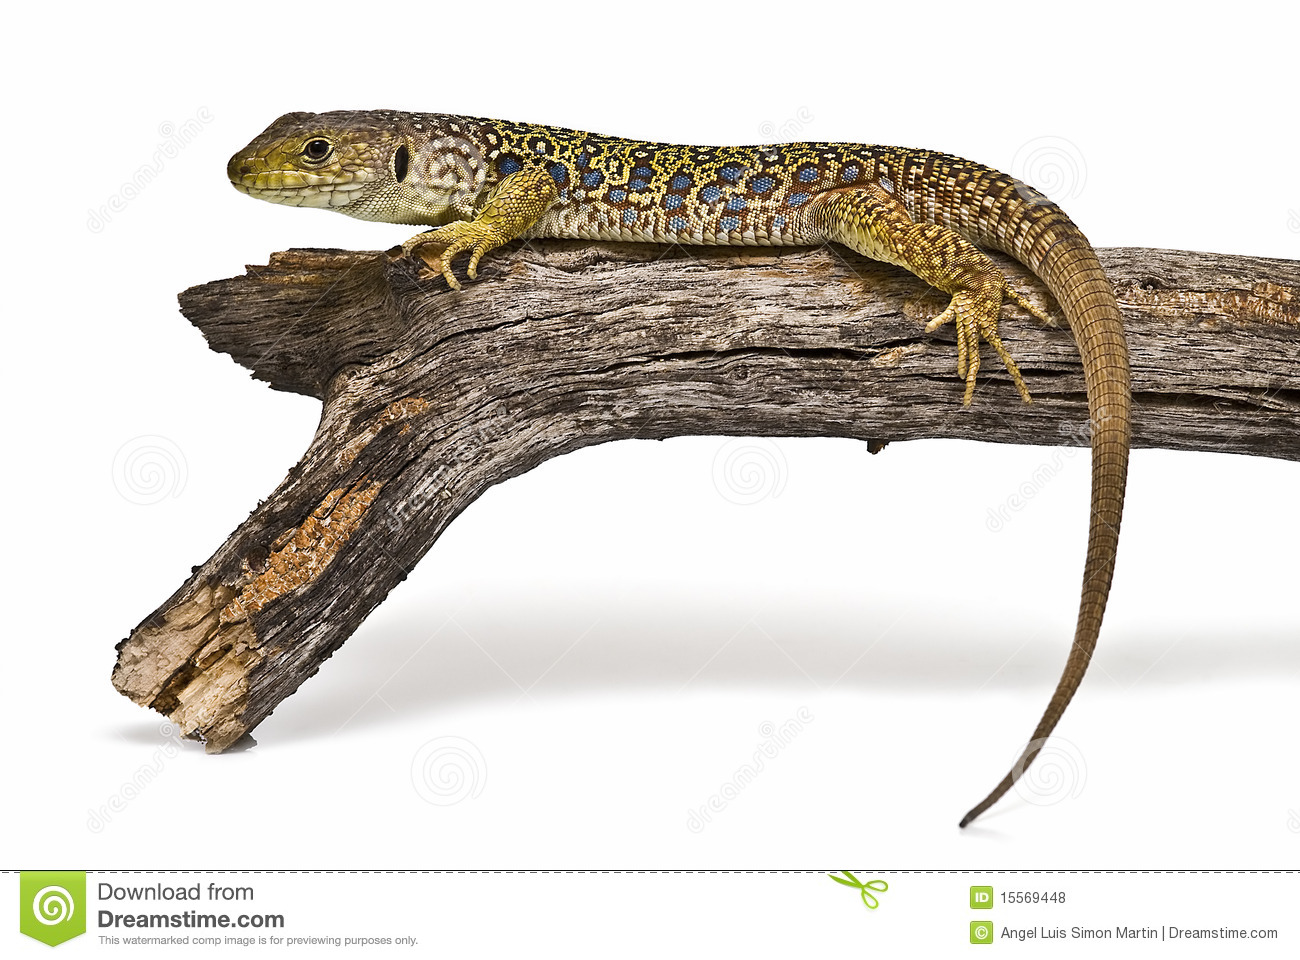 Ocellated Lizard clipart #11, Download drawings